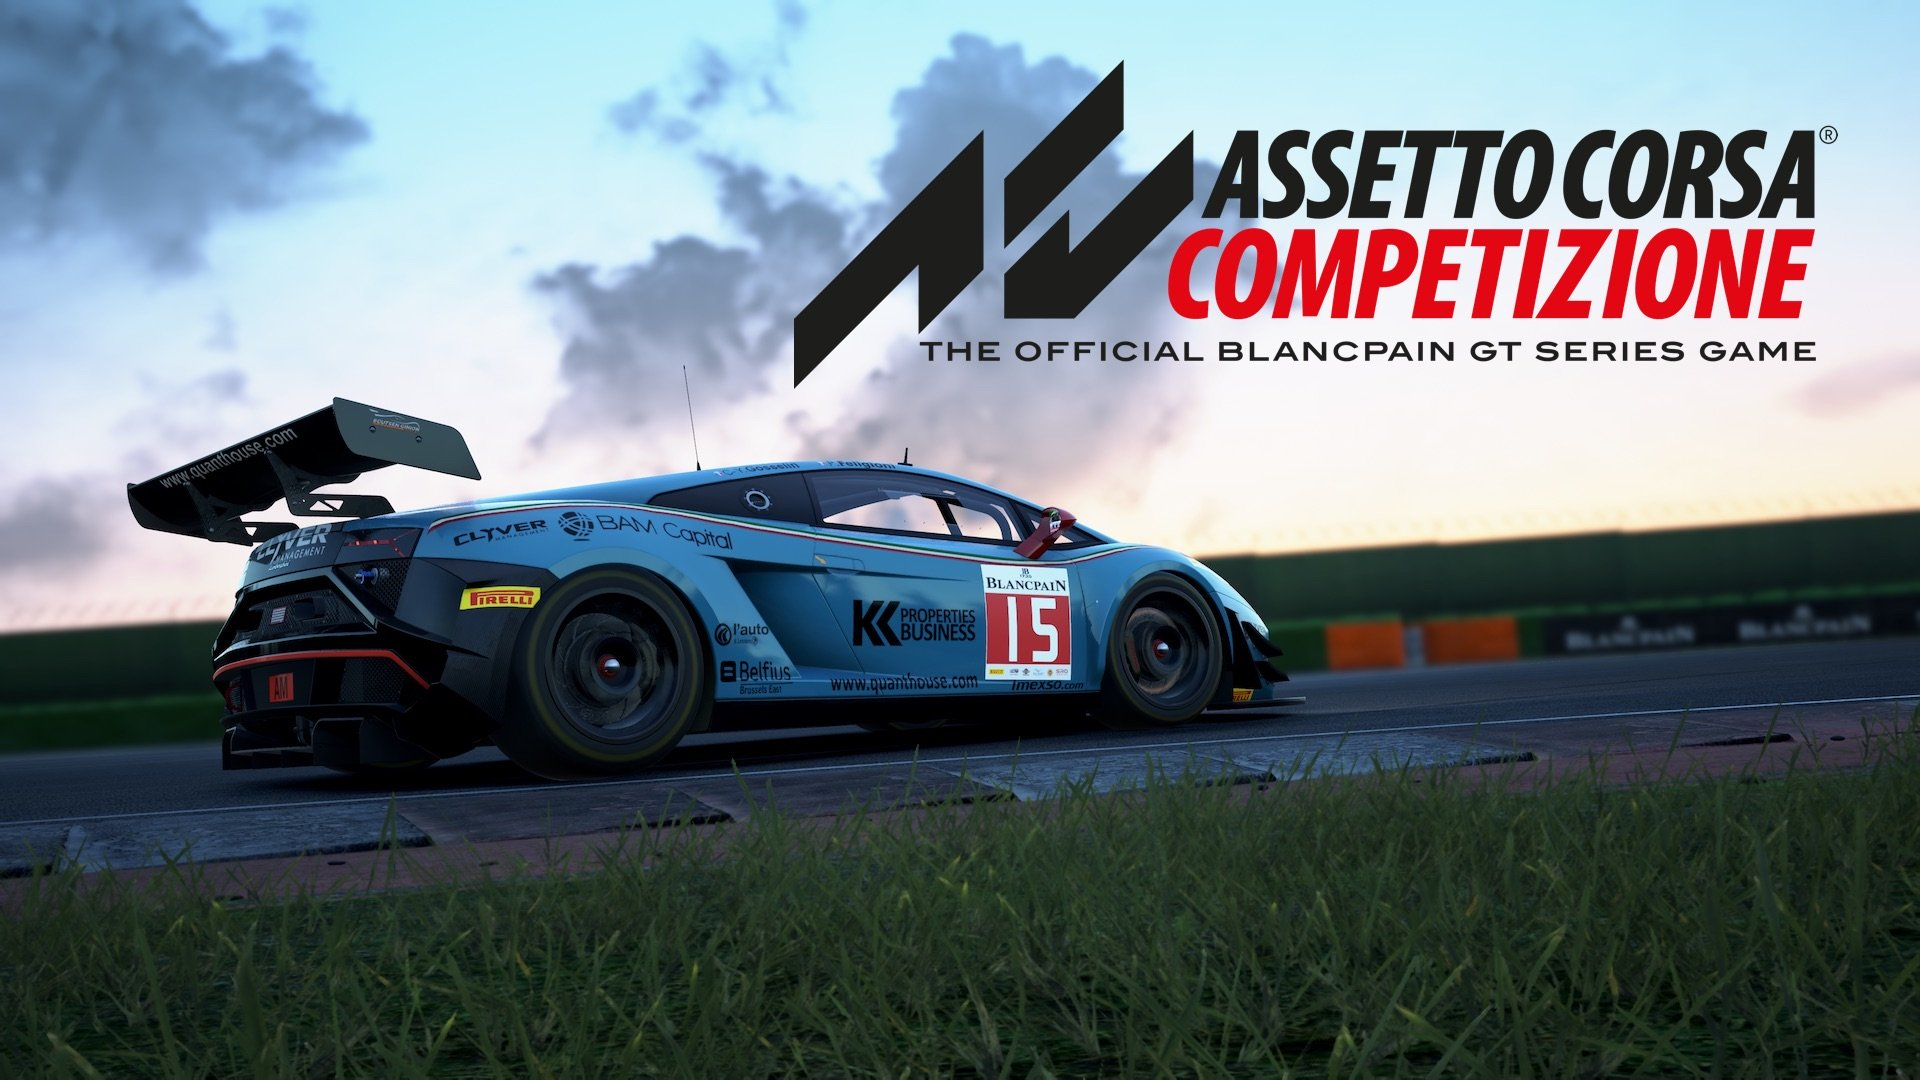 https://www.pdvg.it/wp-content/uploads/2020/03/Assetto-Corsa-Competizione-wallpaper.jpg